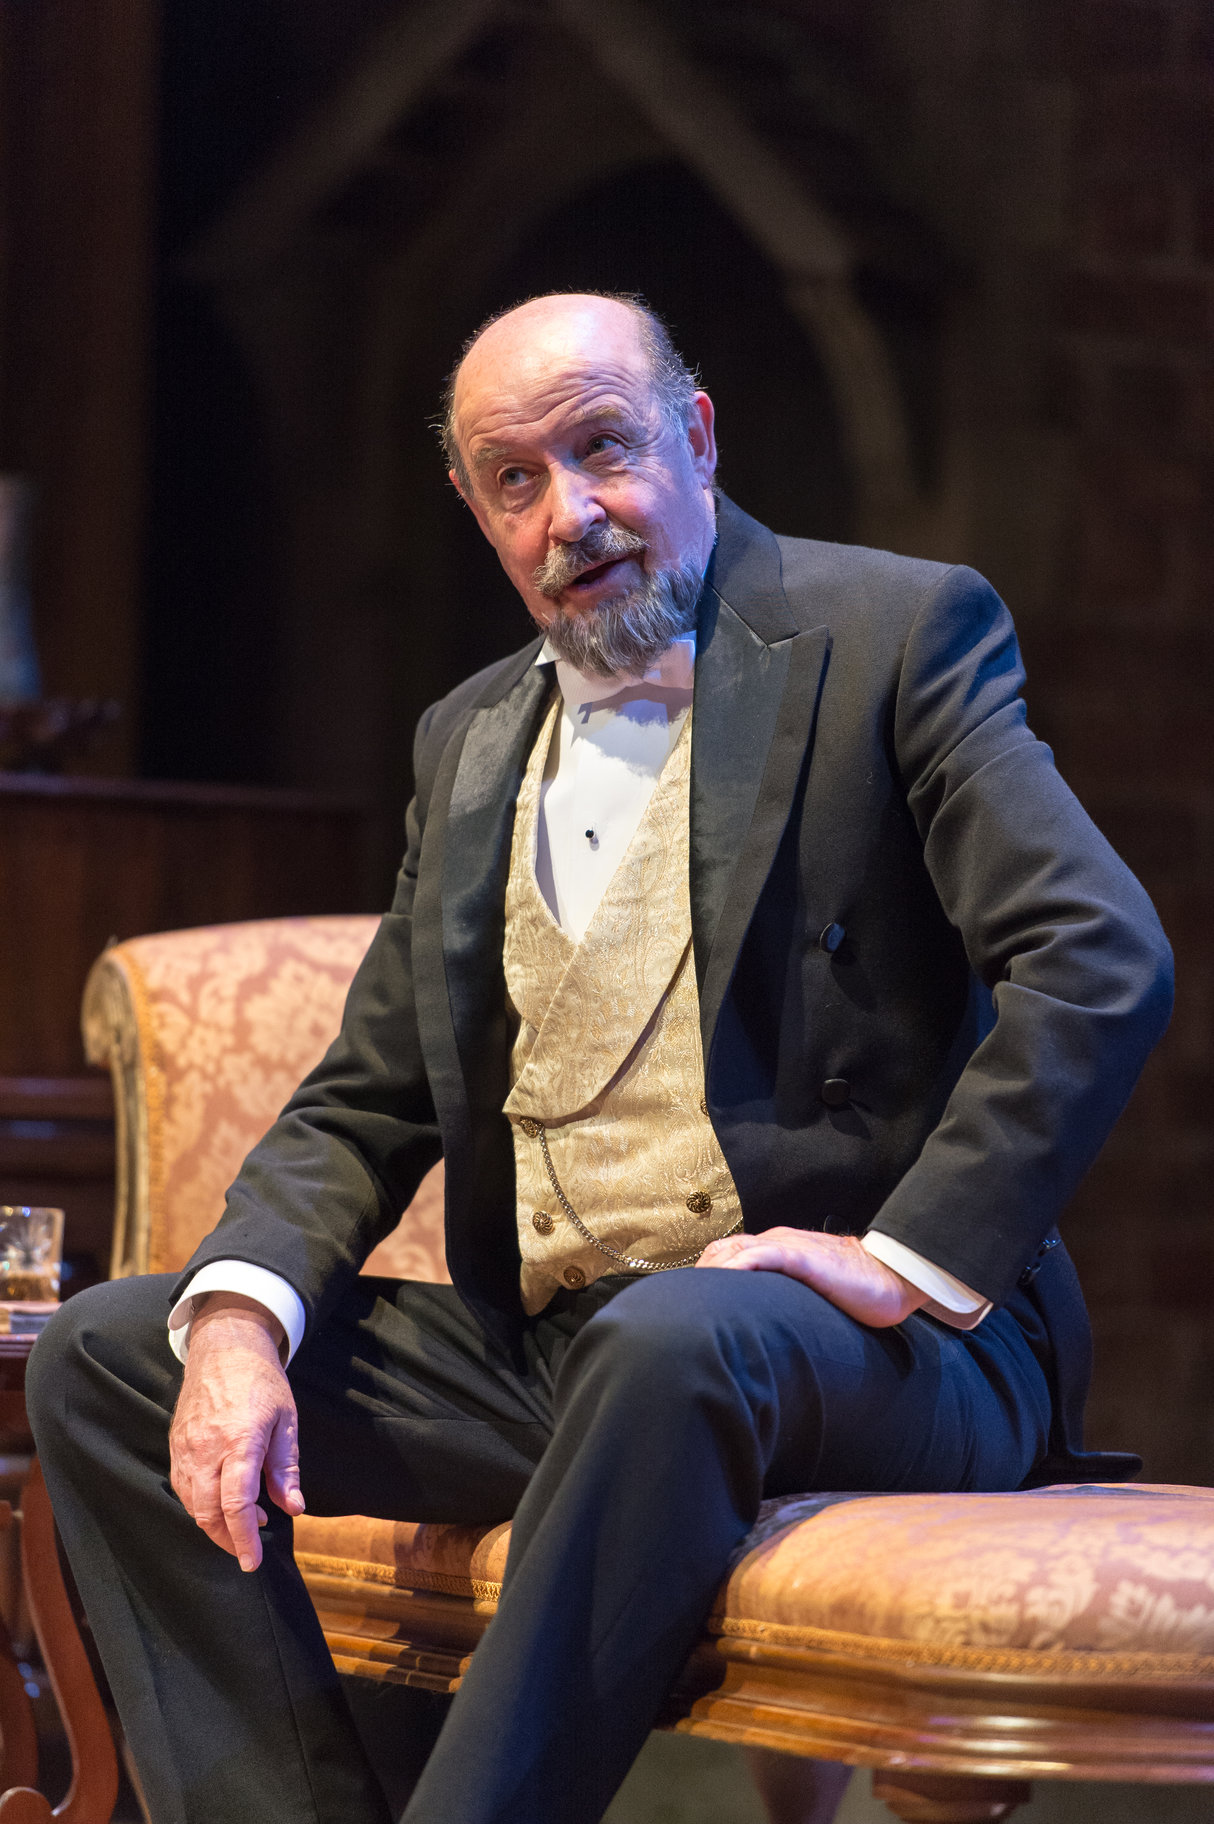 David Horovitch as Leonato in evening wear, sat on a chaise longue.